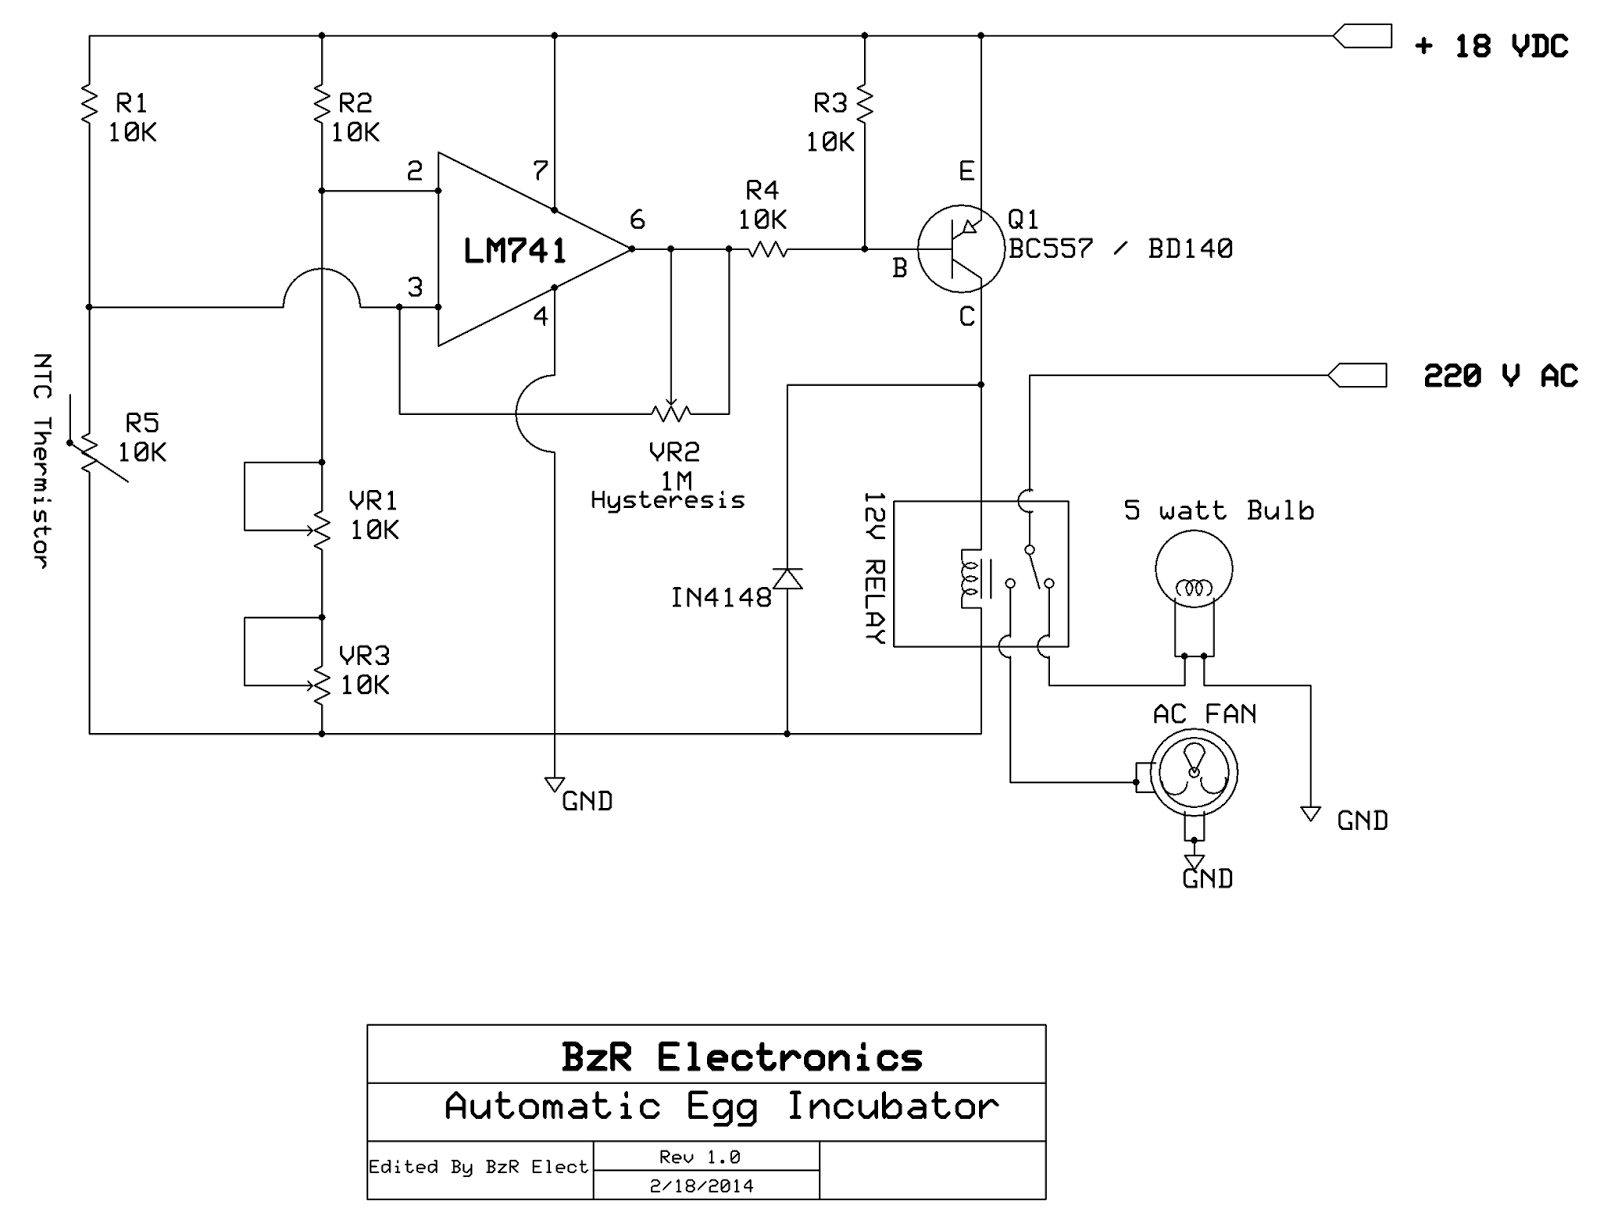 egg circuit diagram on wiring diagram rh 5 jkpolyt coolerbayer de